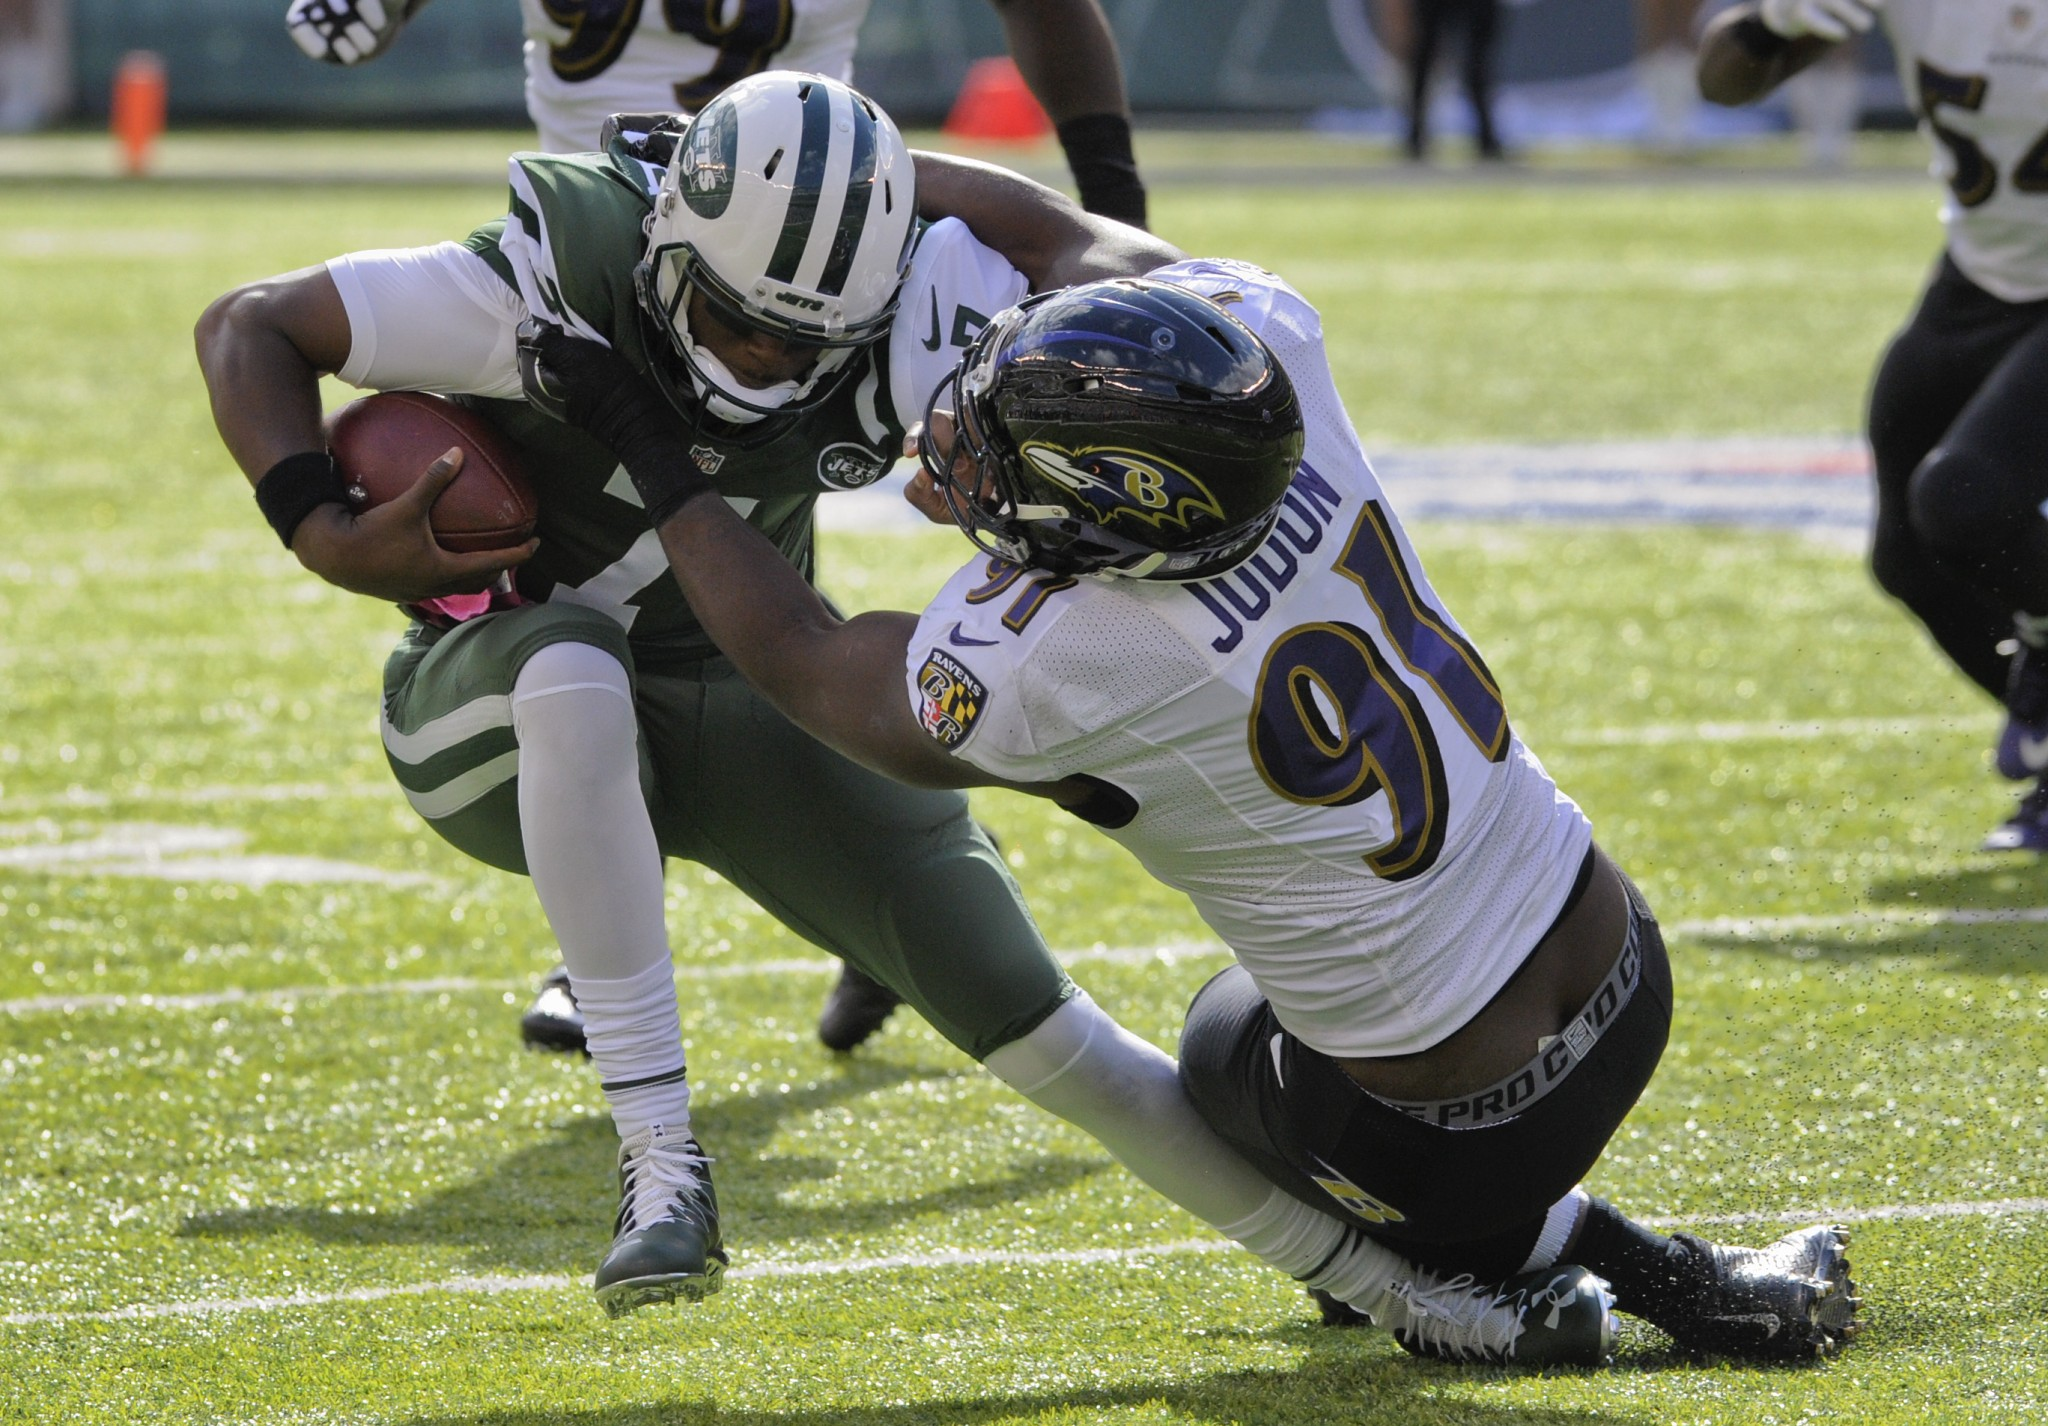 Geno Smith (knee) knocked out, so Jets have to turn back to Rya…